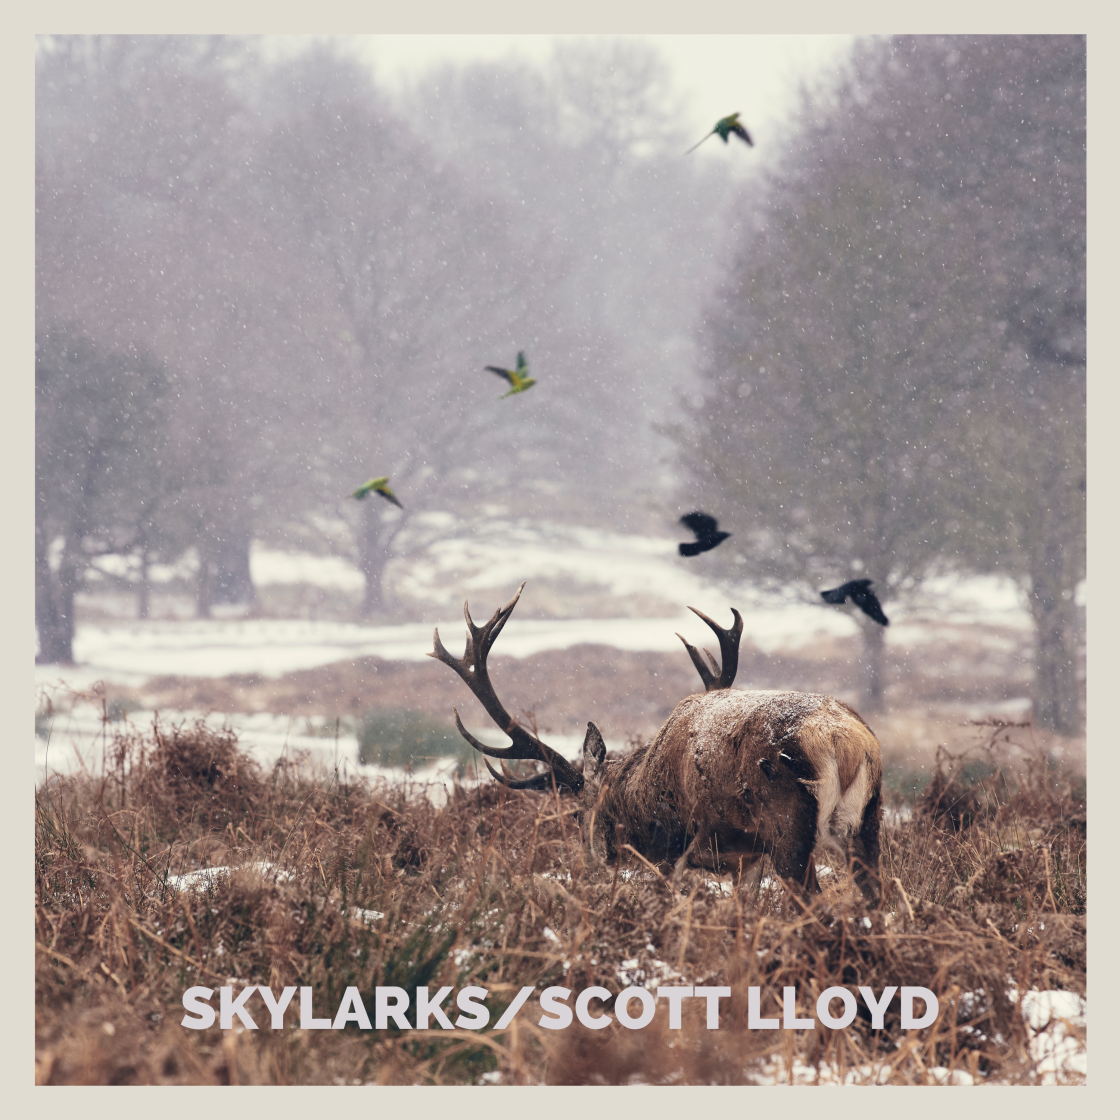 Skylarks - Single Artwork